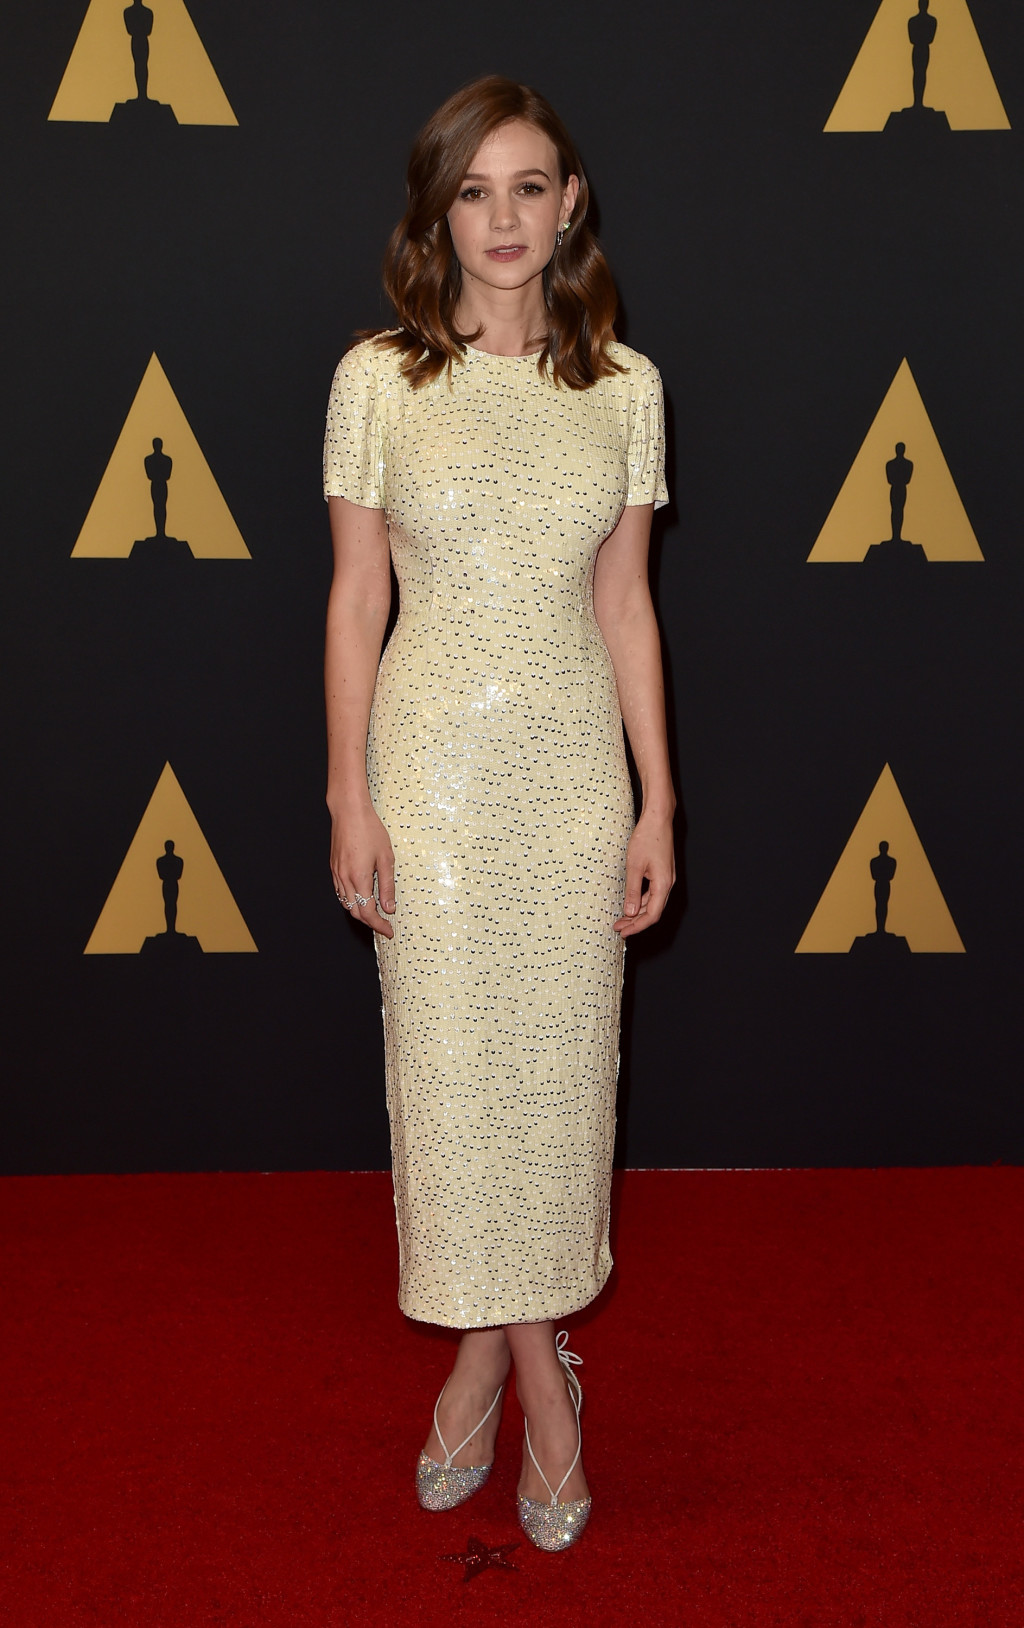 Carey Mulligan in a yellow sequined Jonathan Saunders dress